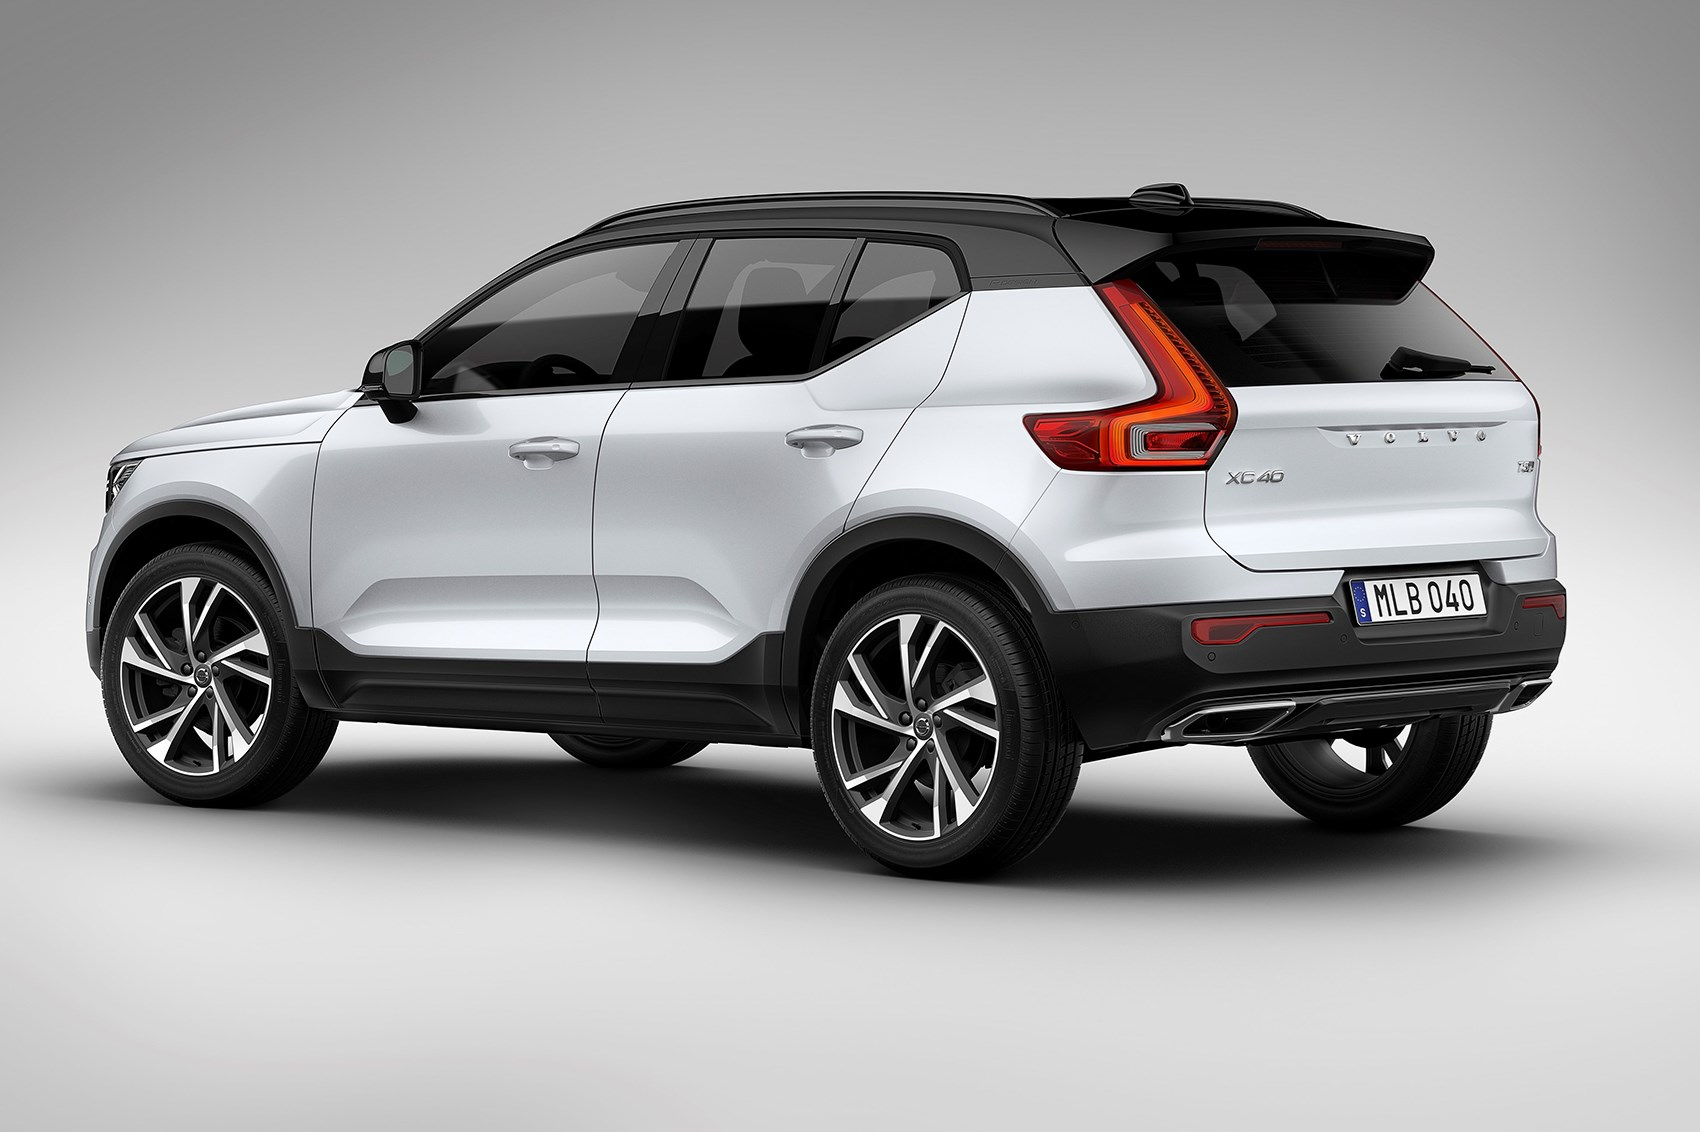 volvo xc40 revealed all new baby crossover is go for 2018 car magazine. Black Bedroom Furniture Sets. Home Design Ideas